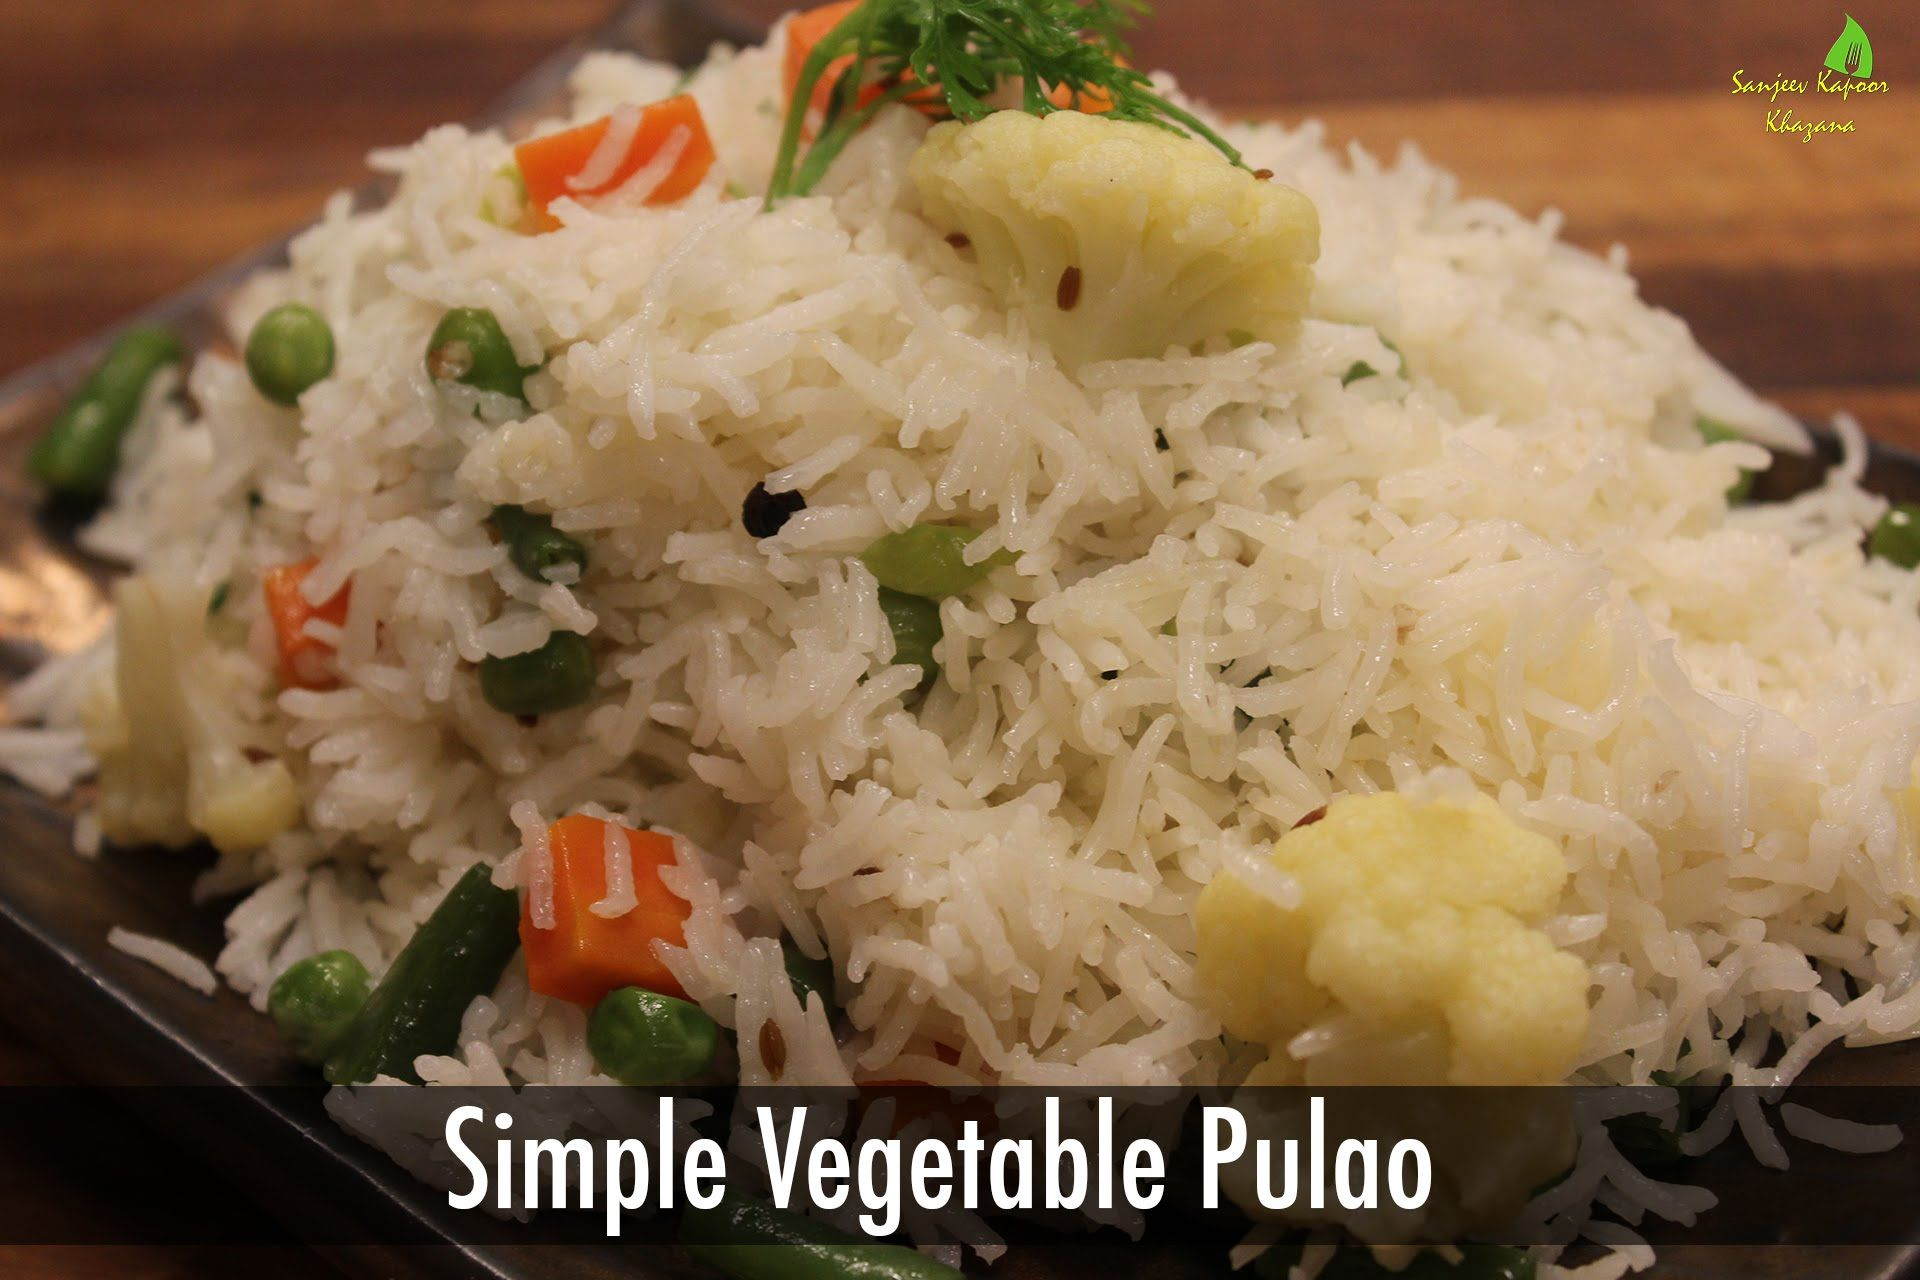 Simple vegetable pulao sanjeev kapoor khazana sanjeev kapoor simple vegetable pulao sanjeev kapoor khazana forumfinder Image collections